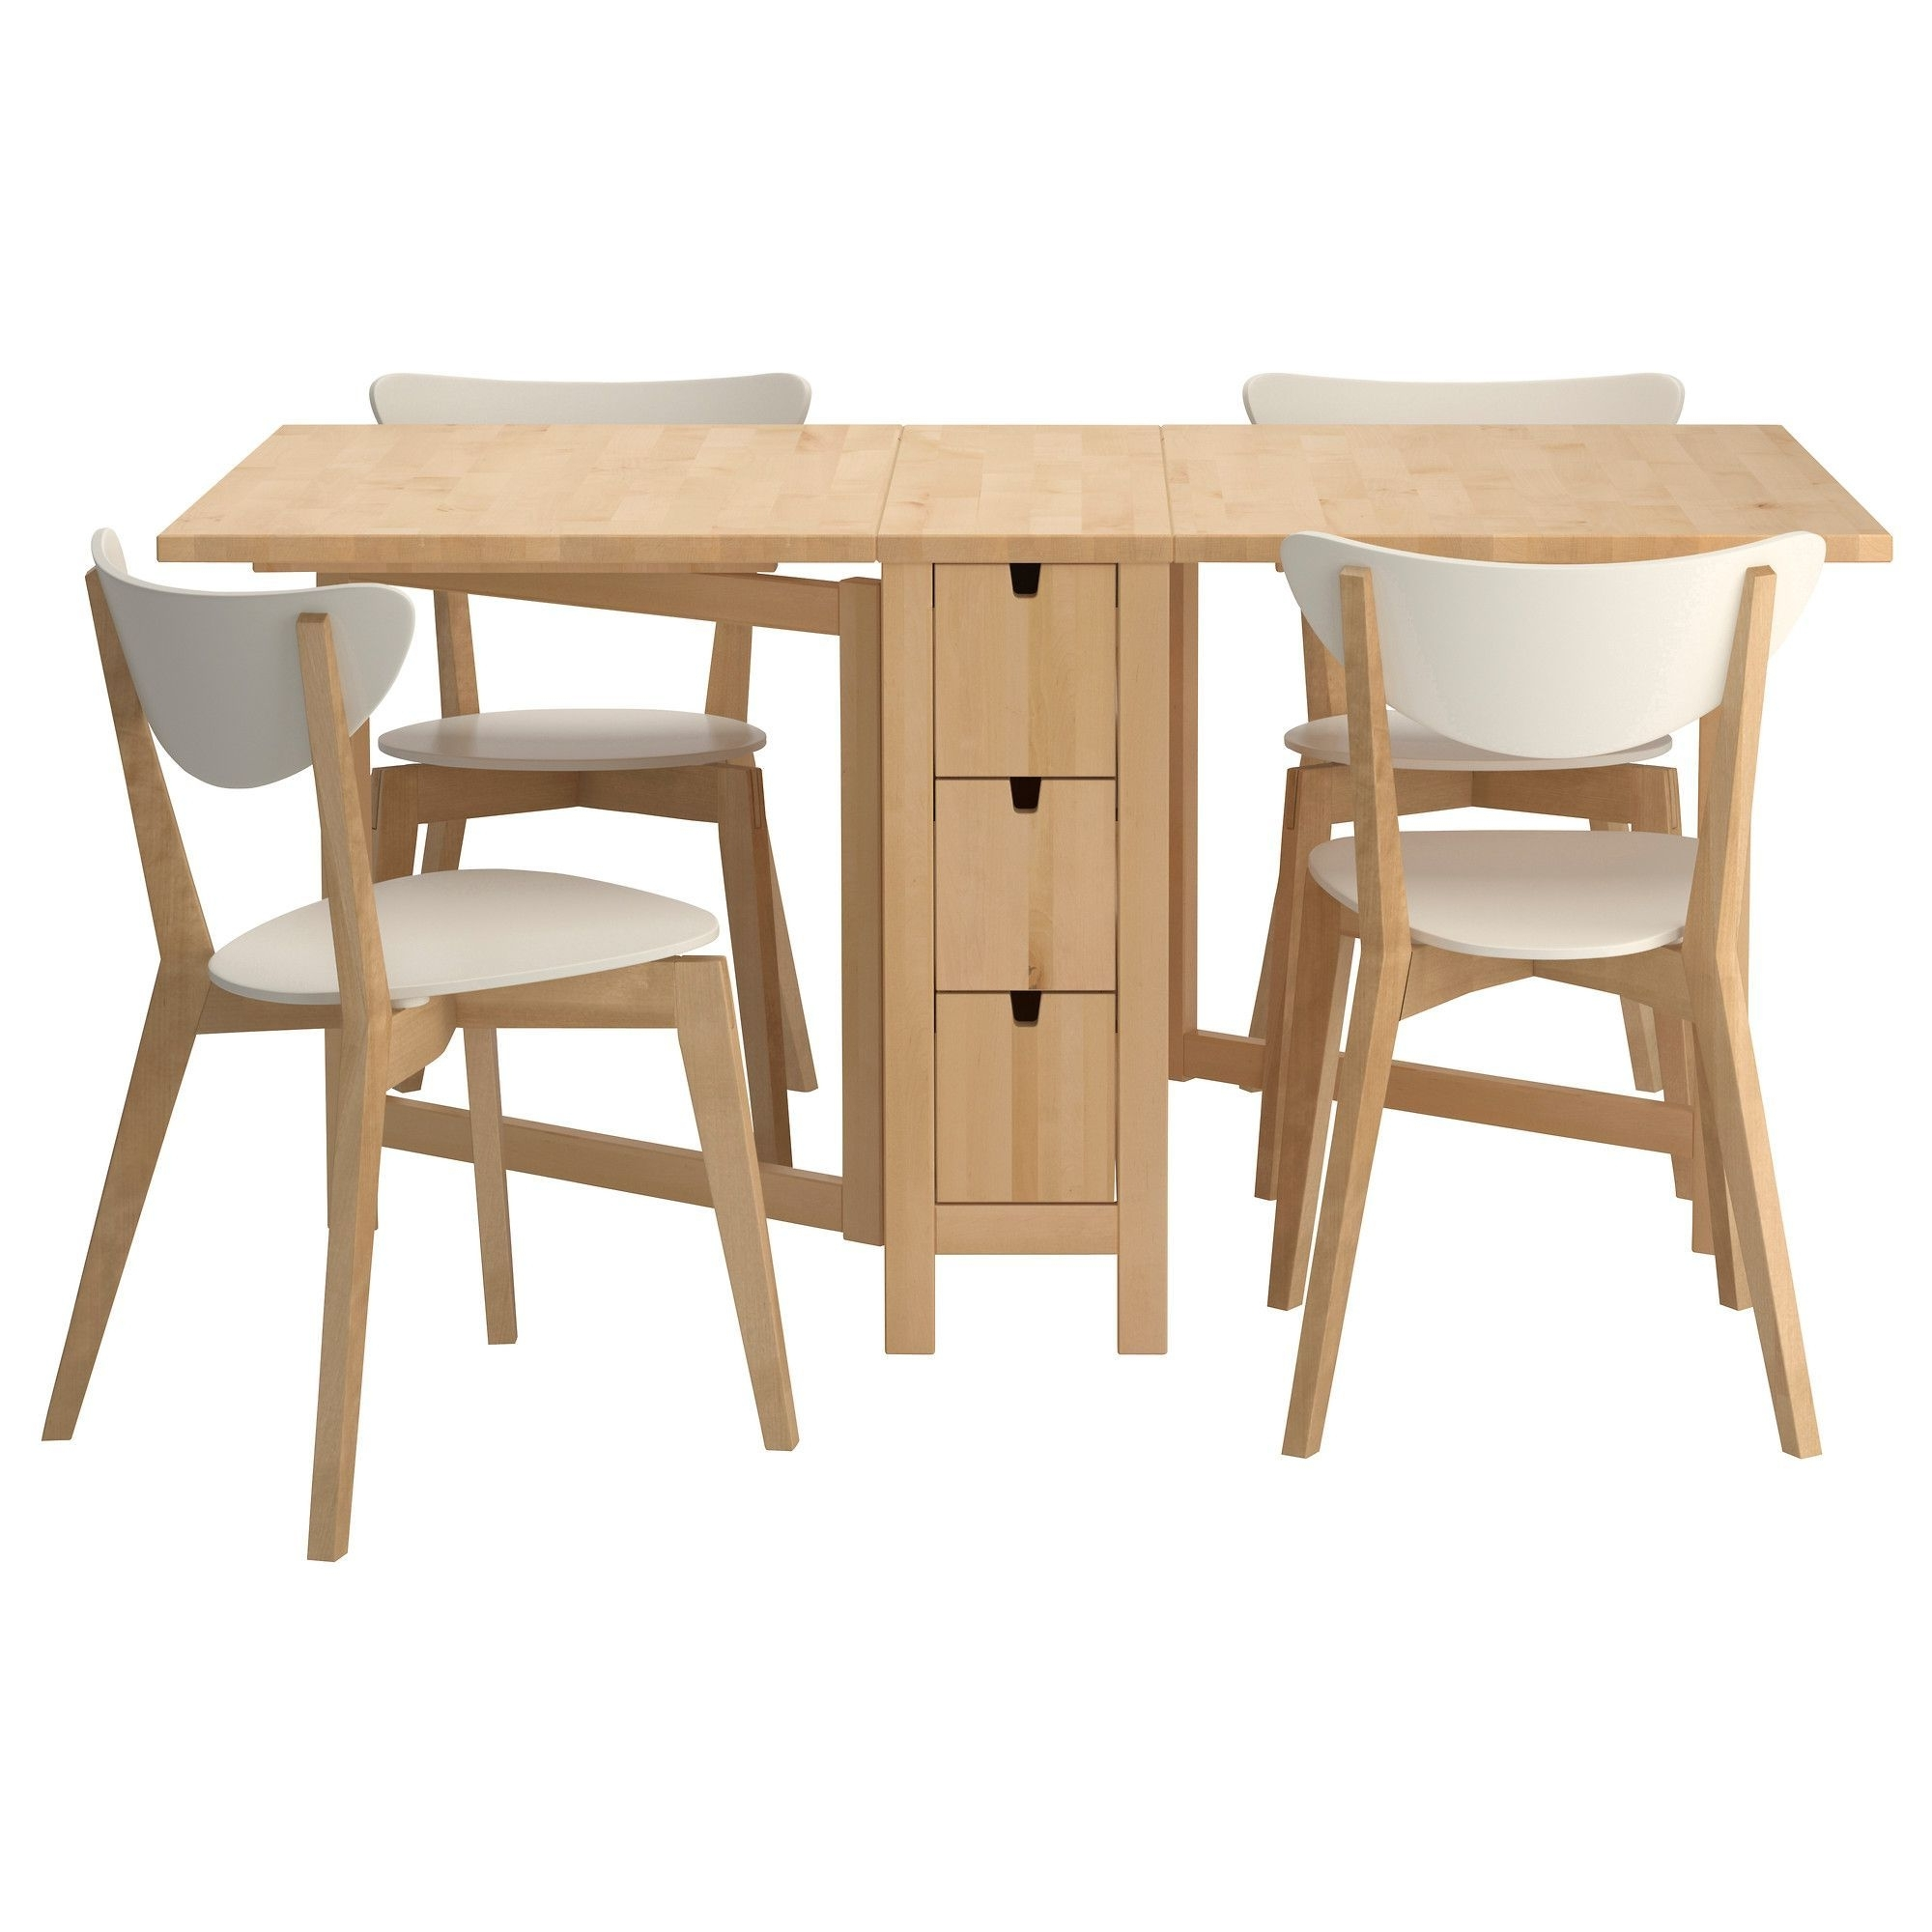 Cheap Folding Dining Tables Intended For Most Current Gorgeous Small Dining Table That Can Be Folded Complete With The (View 16 of 25)